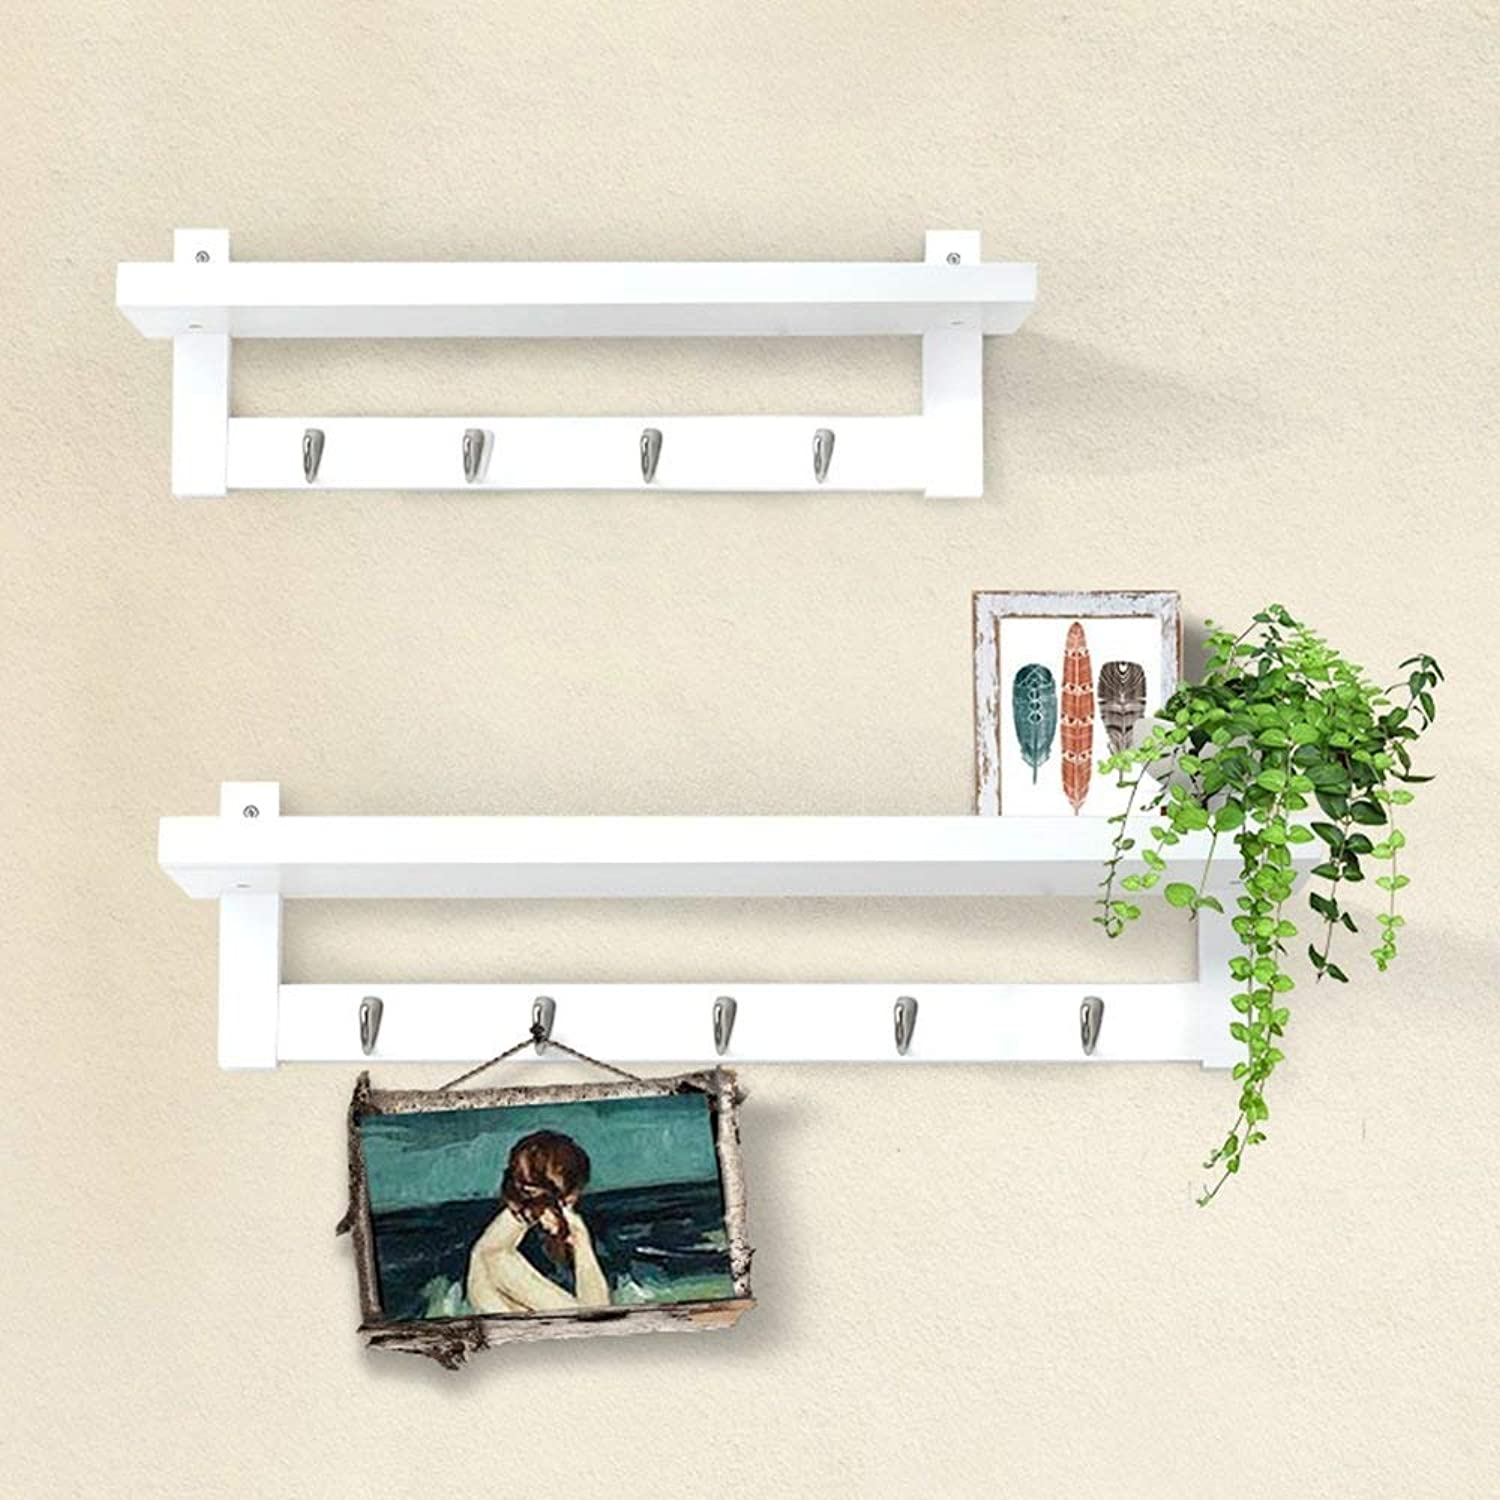 DYR Solid Wood Coat Rack Combination of Wall Shelves Decorative Frame Portico Sturdy and Resistant Coat Hanger (color  White)